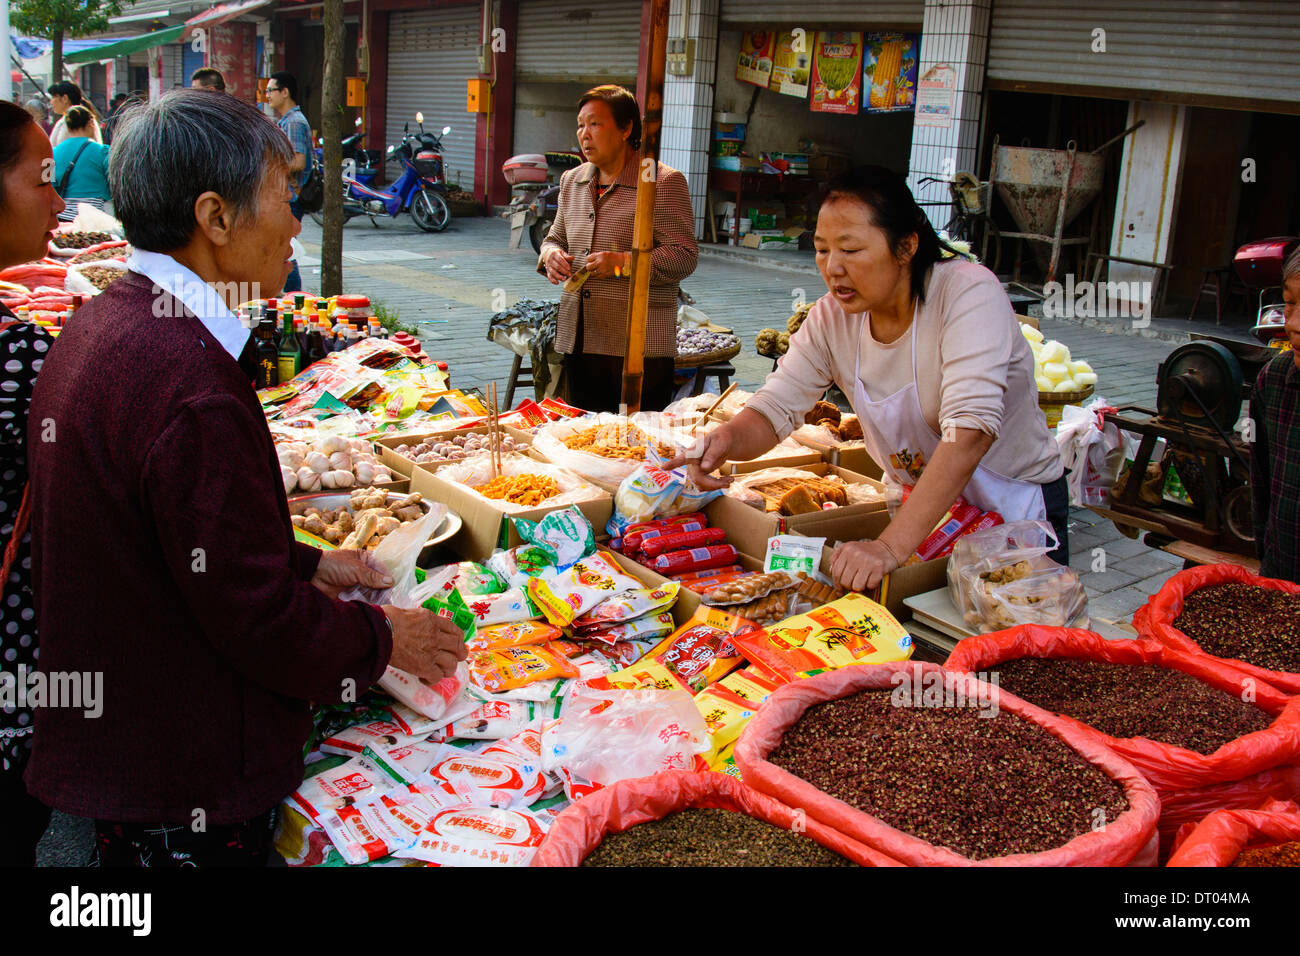 China, Xian, outdoor food street market - Stock Image